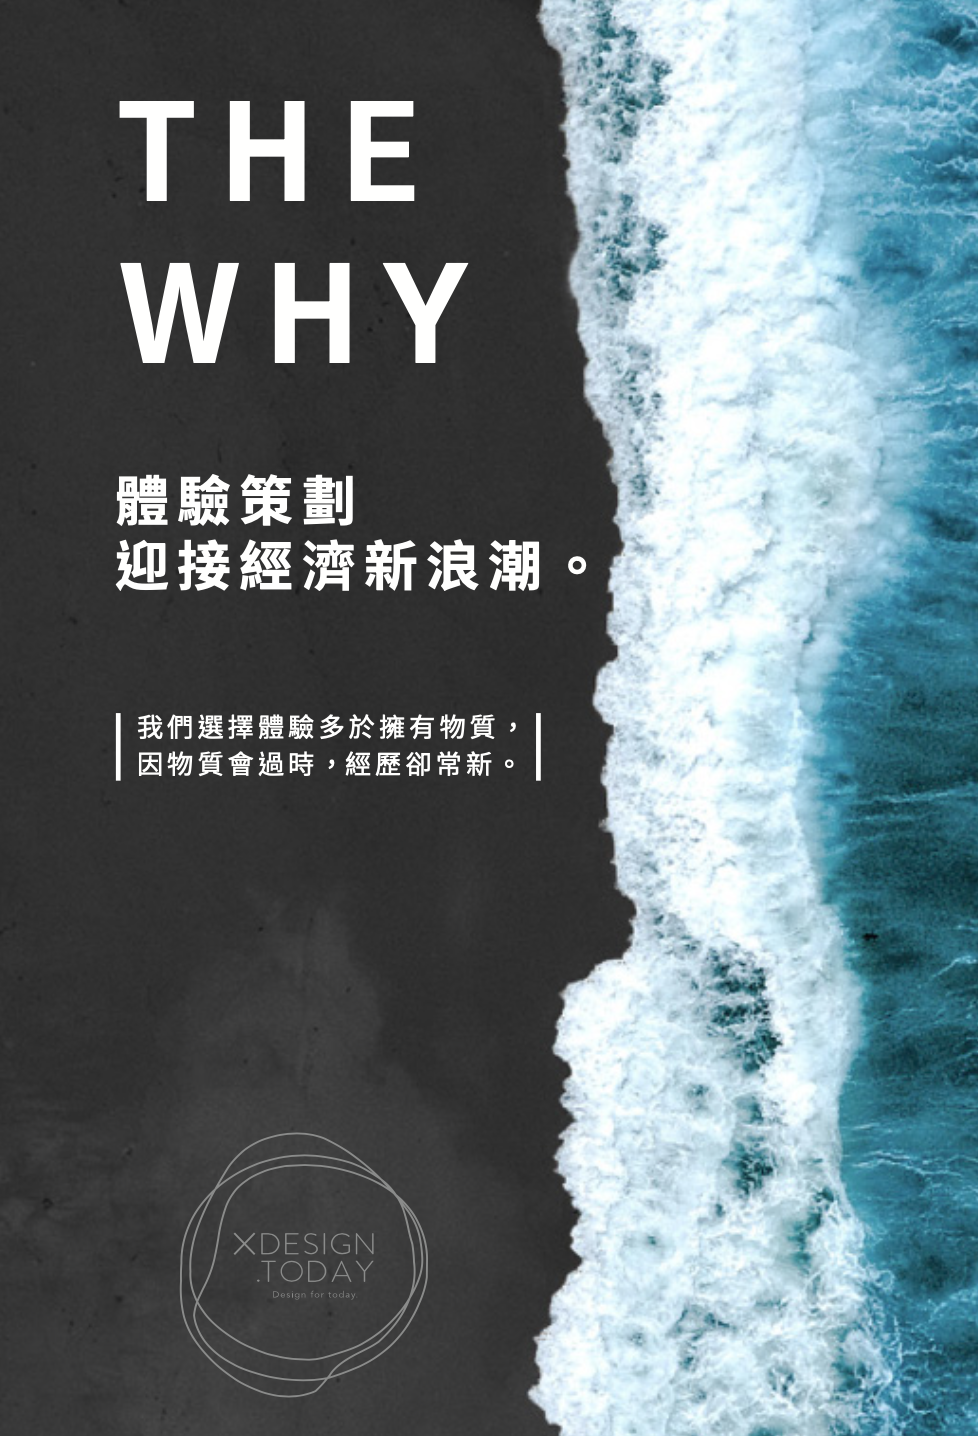 The Why Experience design ebook